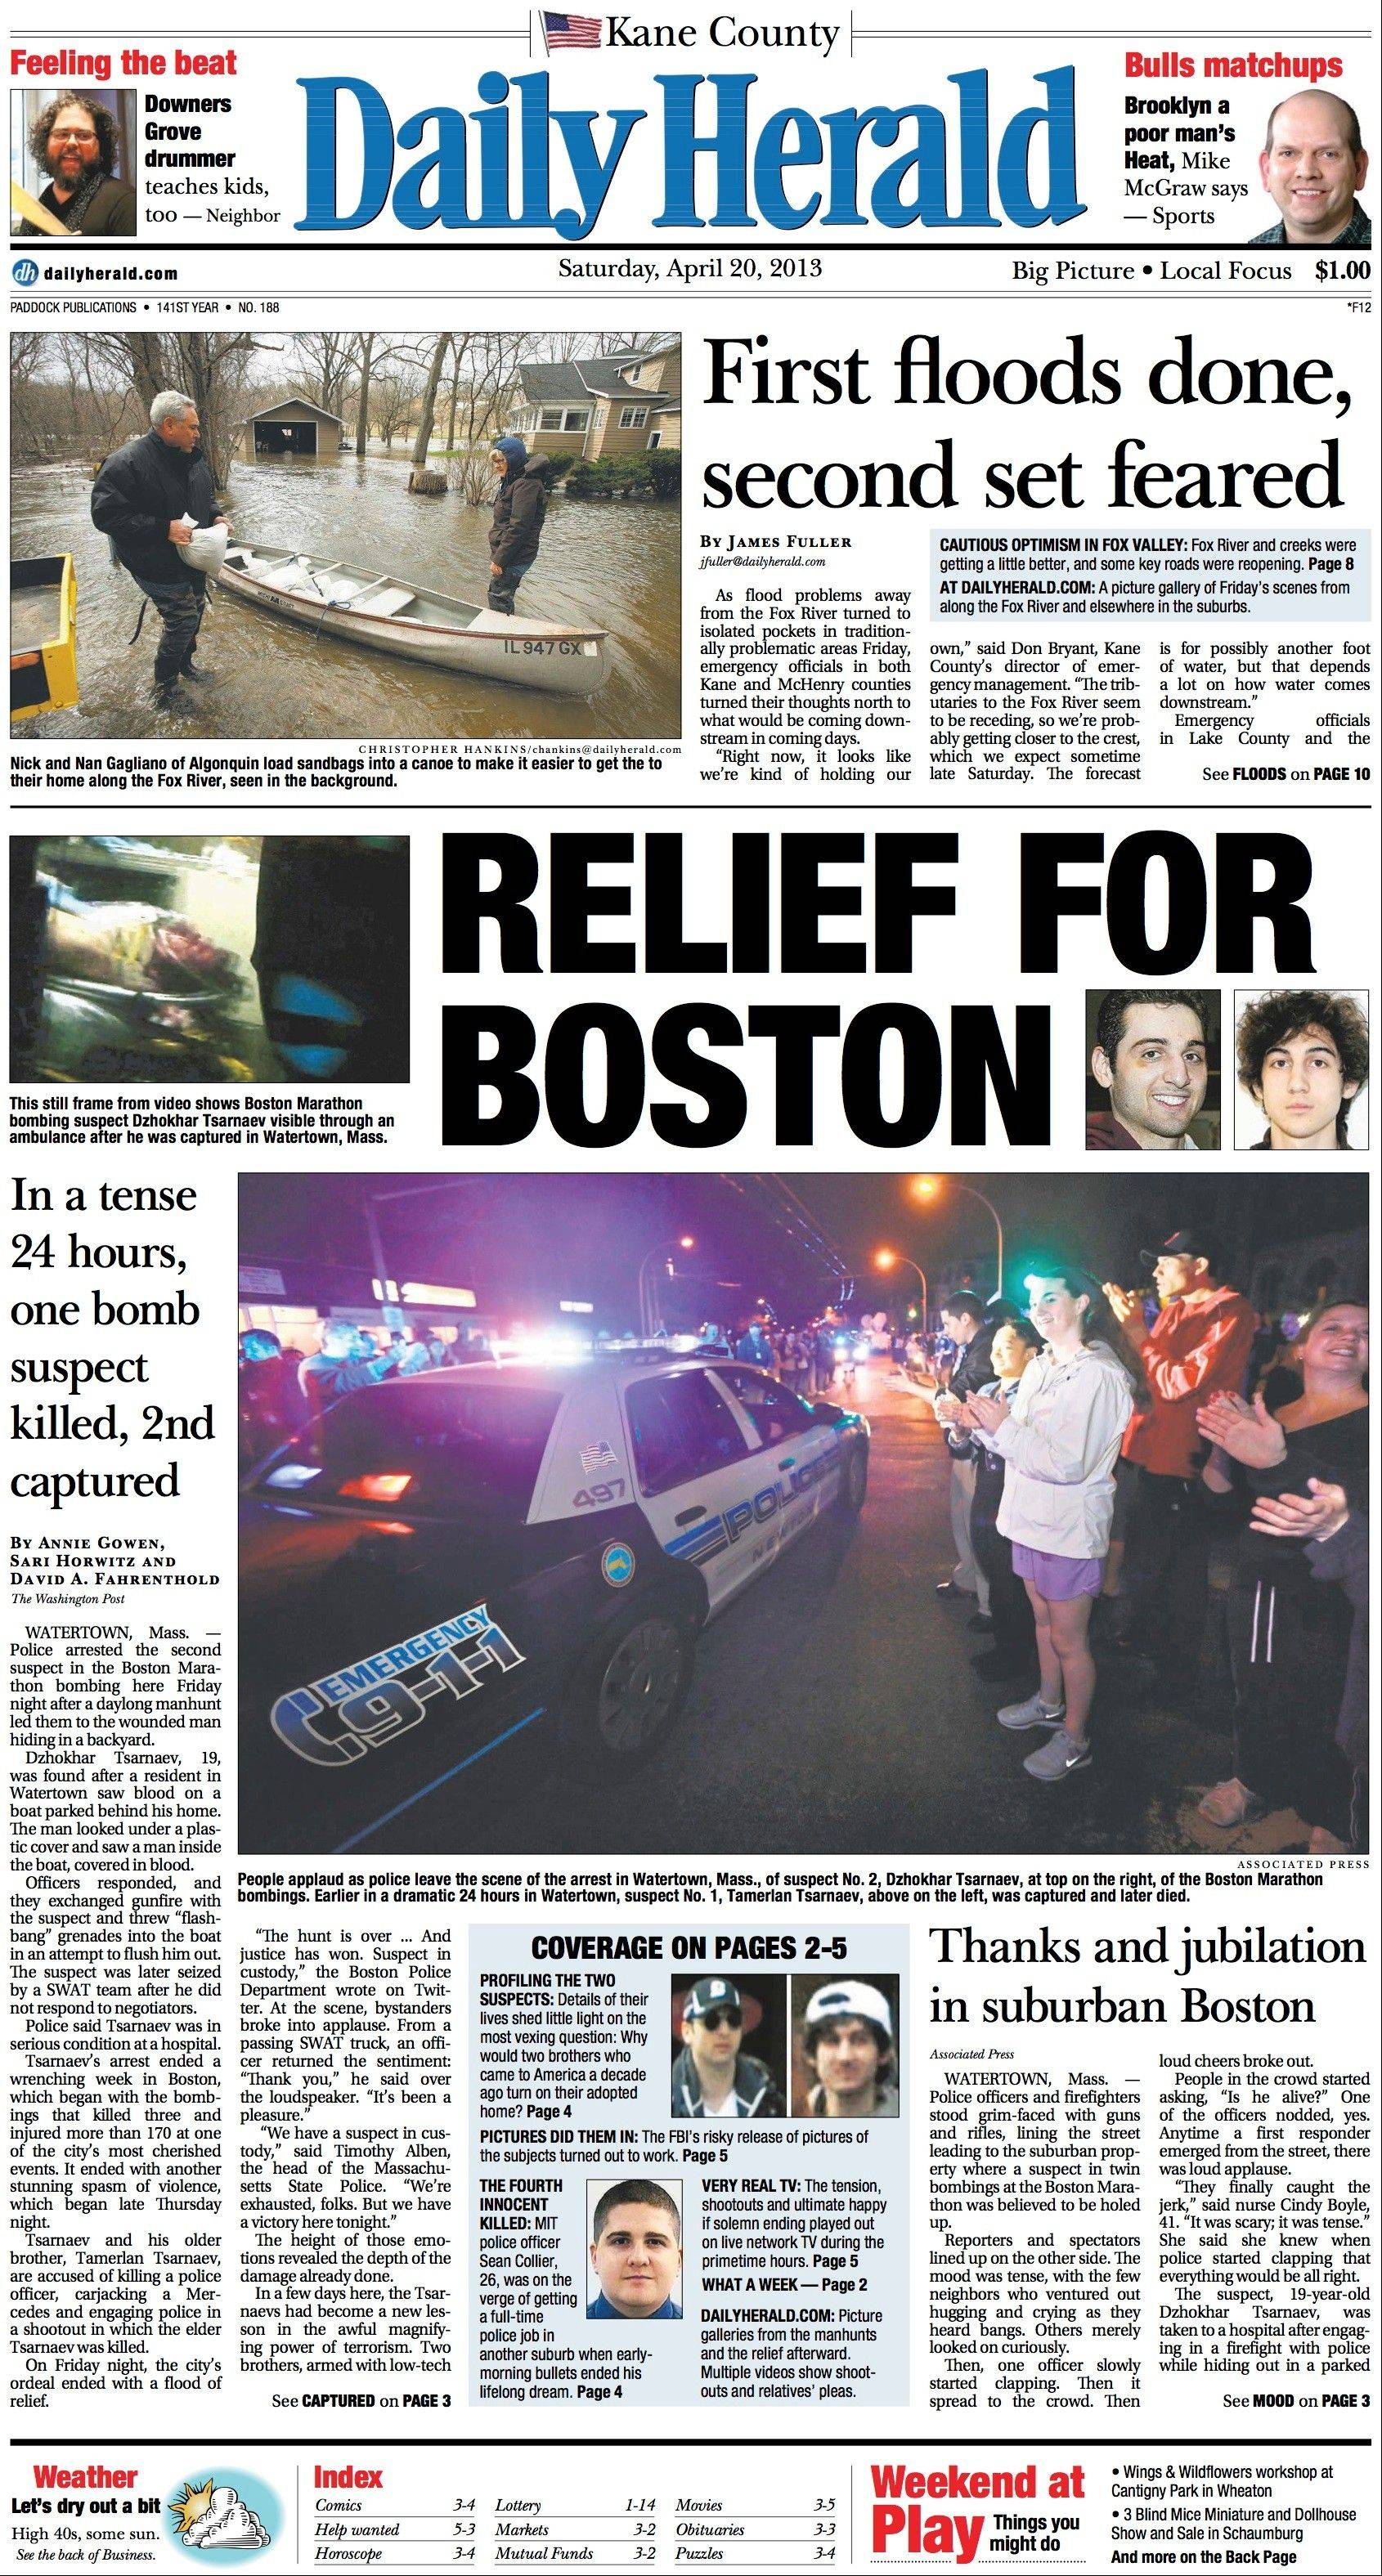 April 20: The rains in the suburbs ended and residents began dealing with the aftermath, while Boston felt some relief with the manhunt of the Boston Marathon suspects ending.